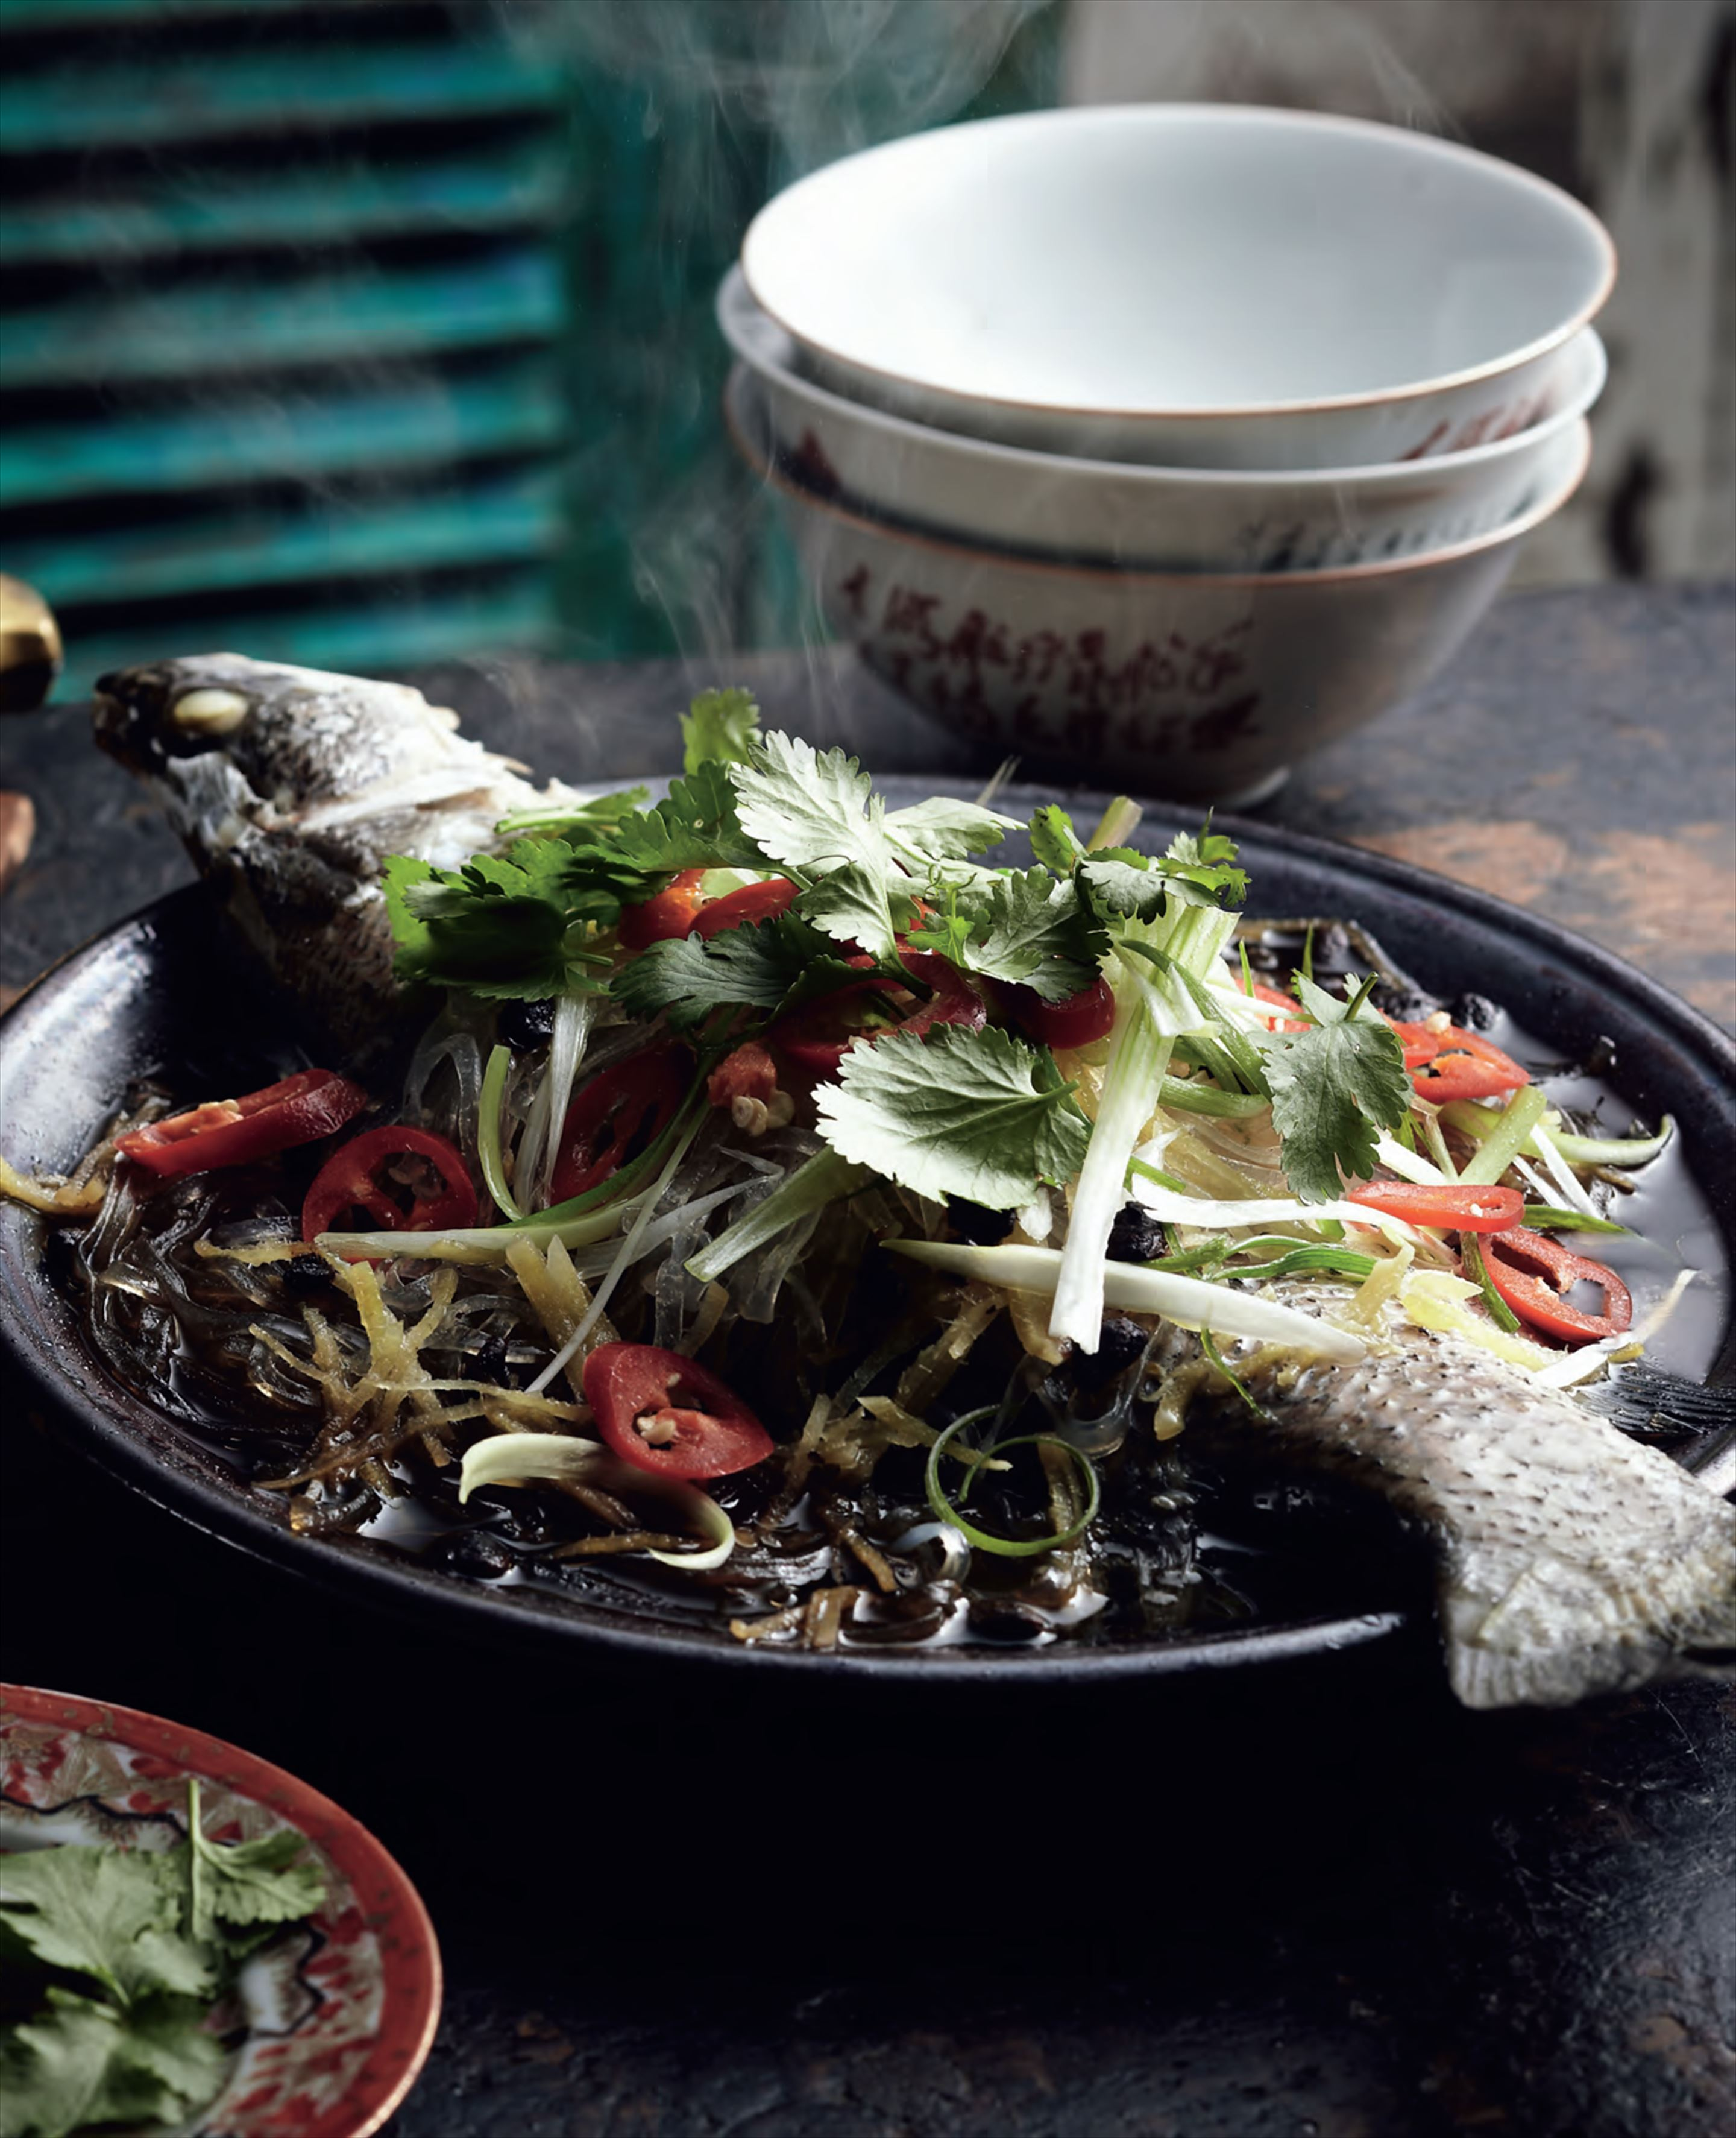 Steamed fish with fermented soya beans and glass noodles